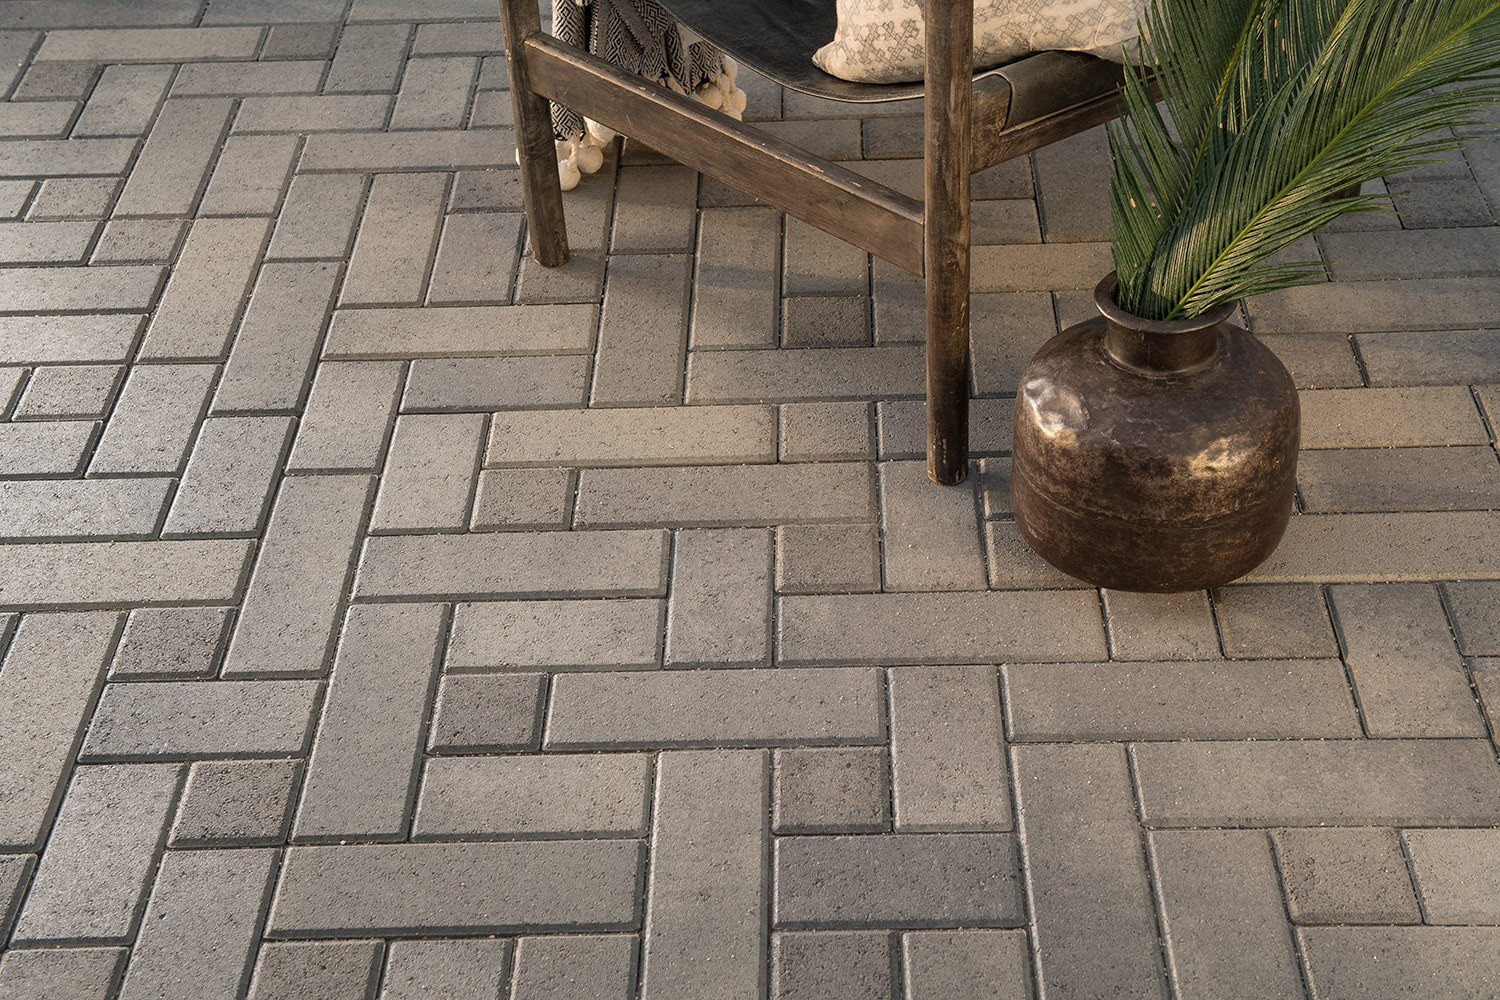 Paver-Casita-Manor-03-Web.jpg